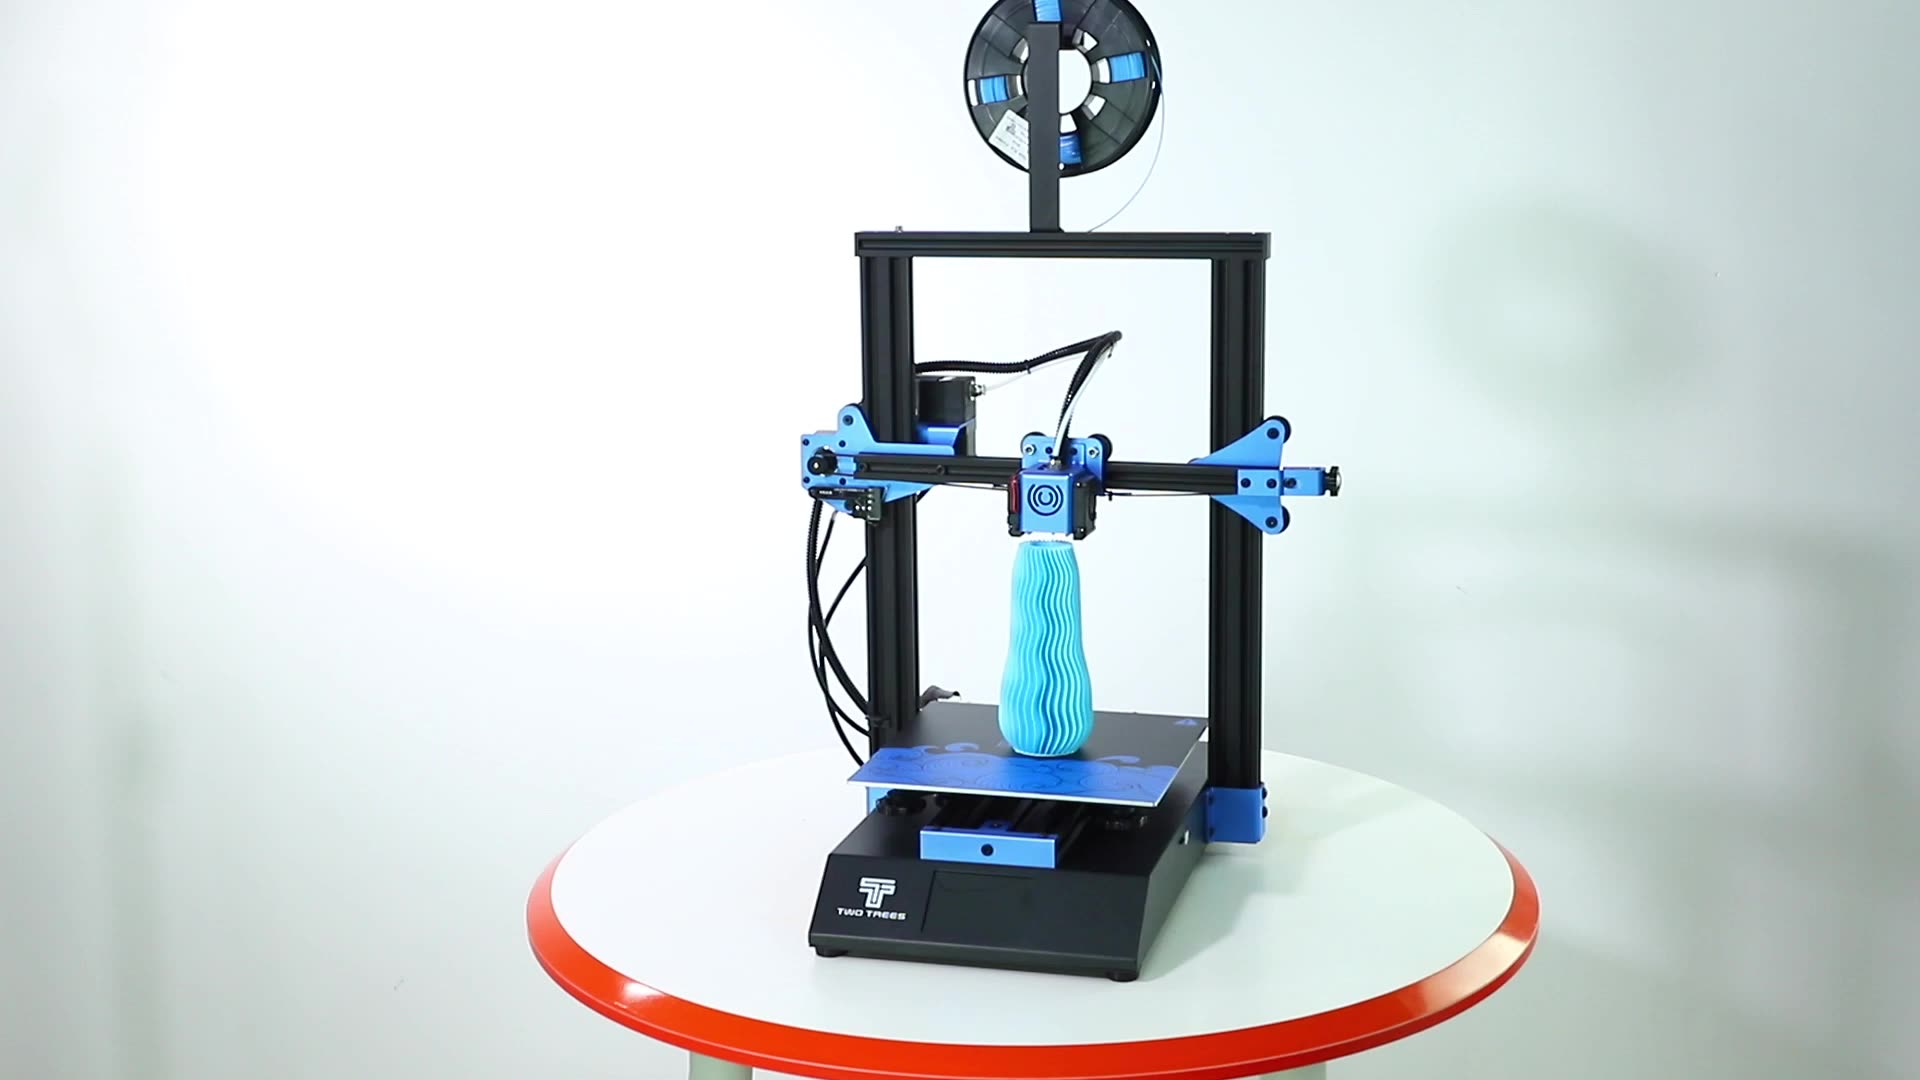 2020 Hot sales Bluer 235*235mm High precision Auto Leveling Resume PrintTempered Glass Large Size 3d printer